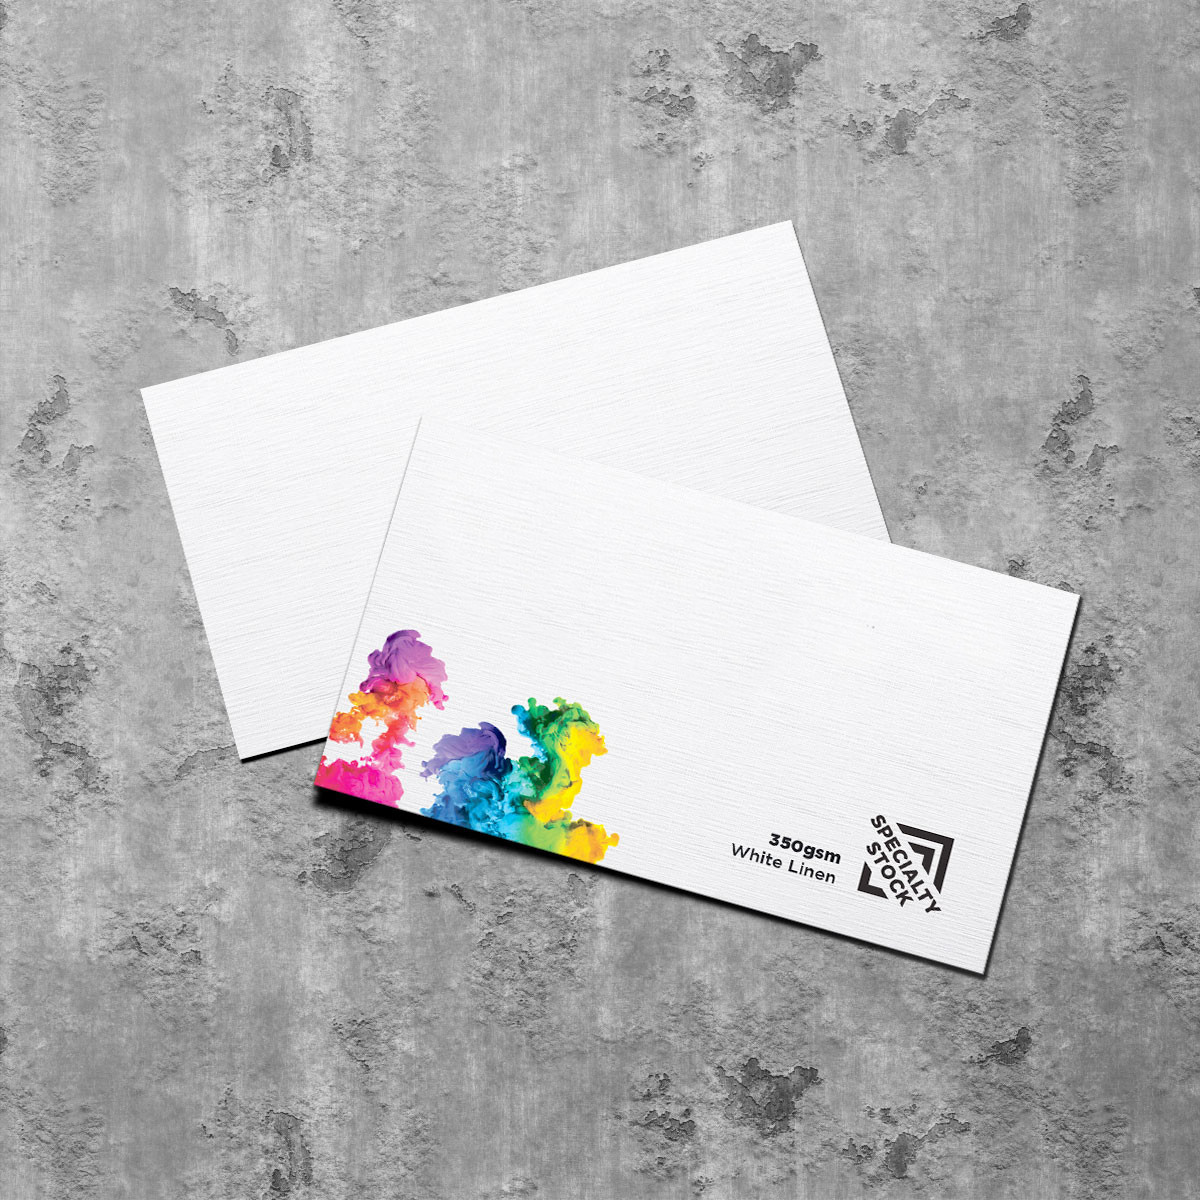 100 recycled business cards eco friendly printing australia white linen textured business cards 350gsm reheart Image collections